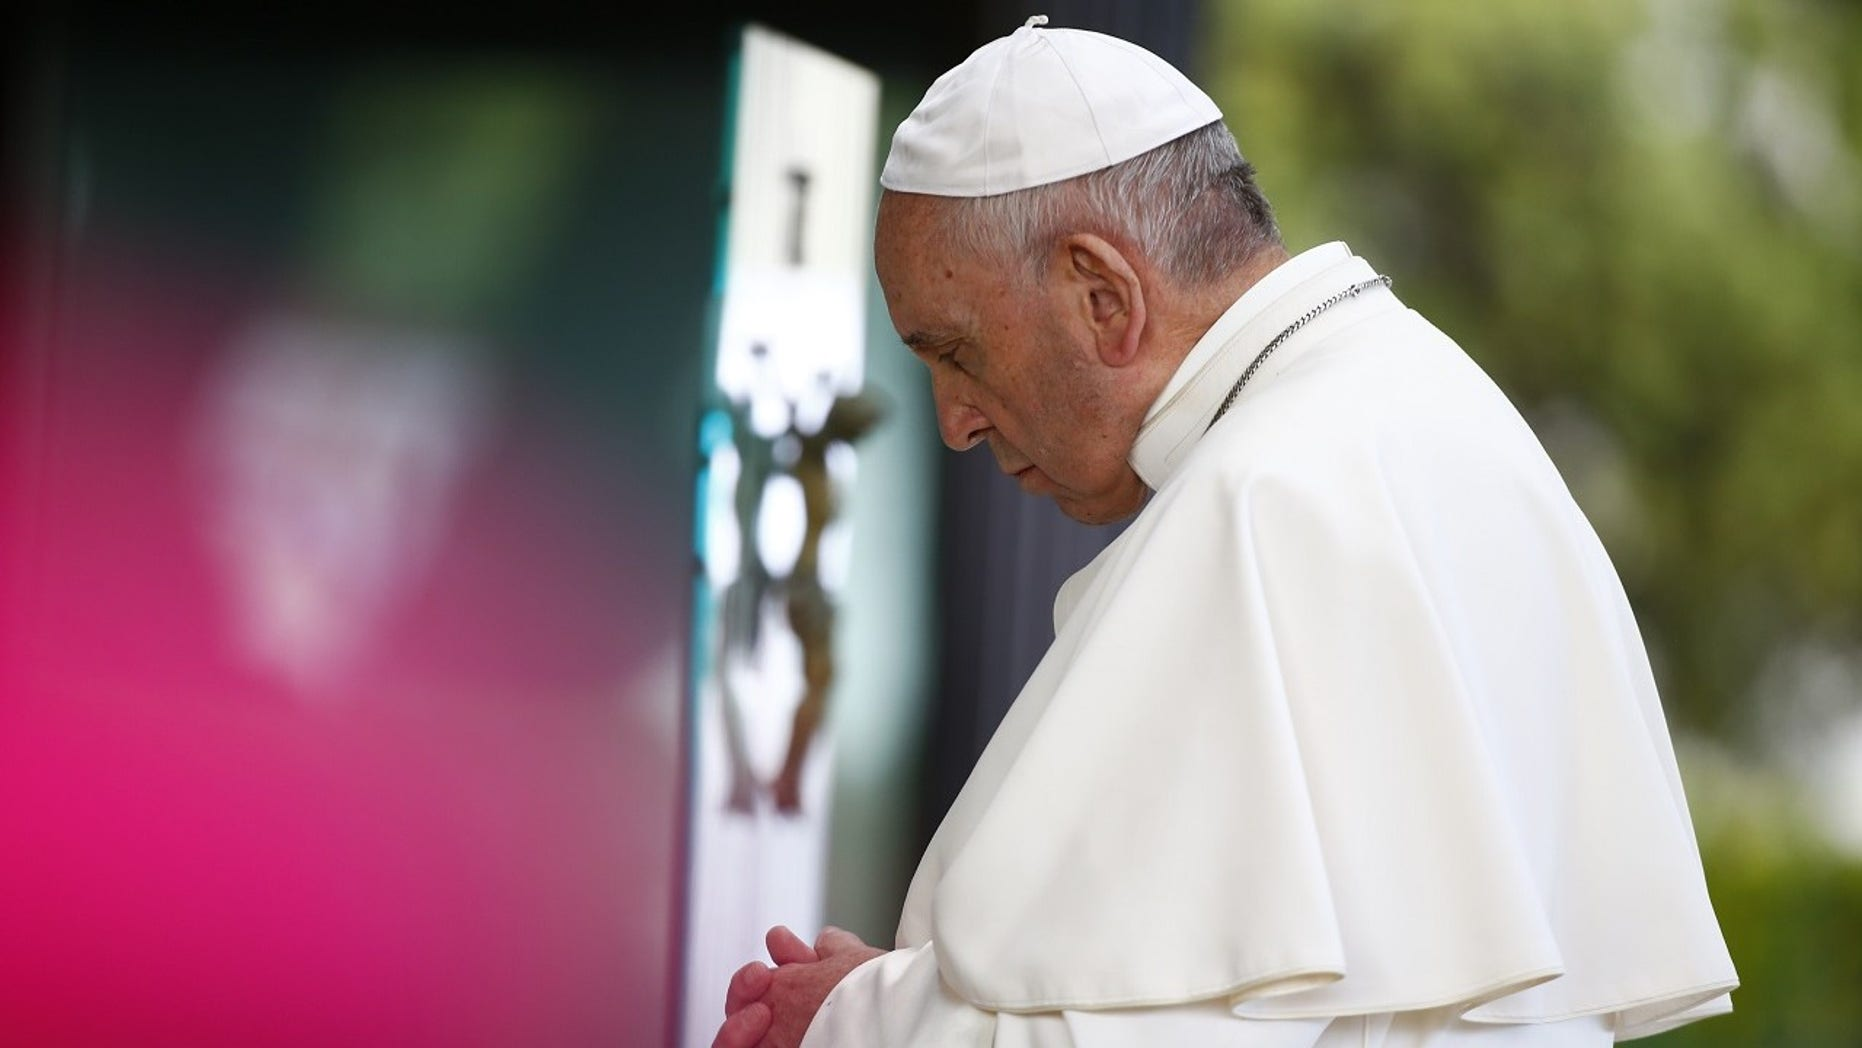 Pope Francis admitted on Tuesday he sometimes takes a nap when he prays.